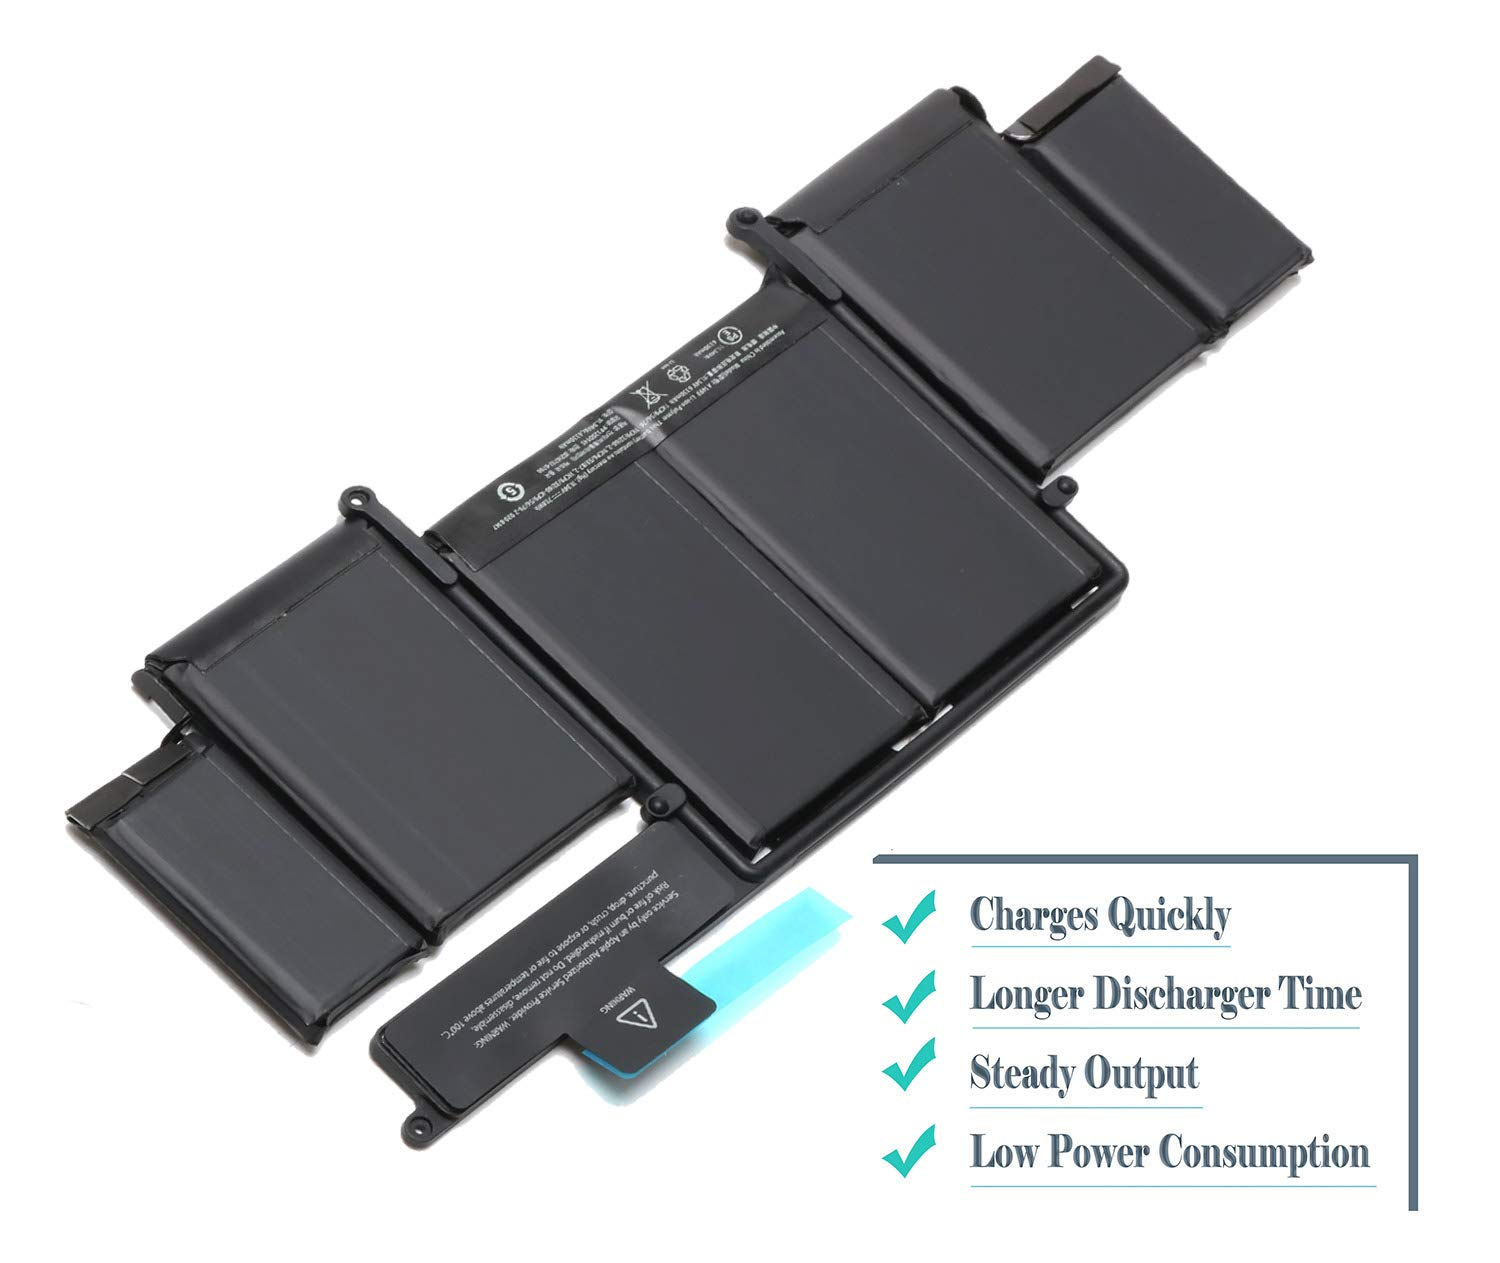 A1493 New Laptop Battery for Apple A1502 ME864LL/A ME866LL/A; MacBook Pro 13'' Retina Battery-Only for Late 2013, Mid 2014 Version [Li-Polymer 11.34V 71.8Wh] by ROLADA (Image #4)